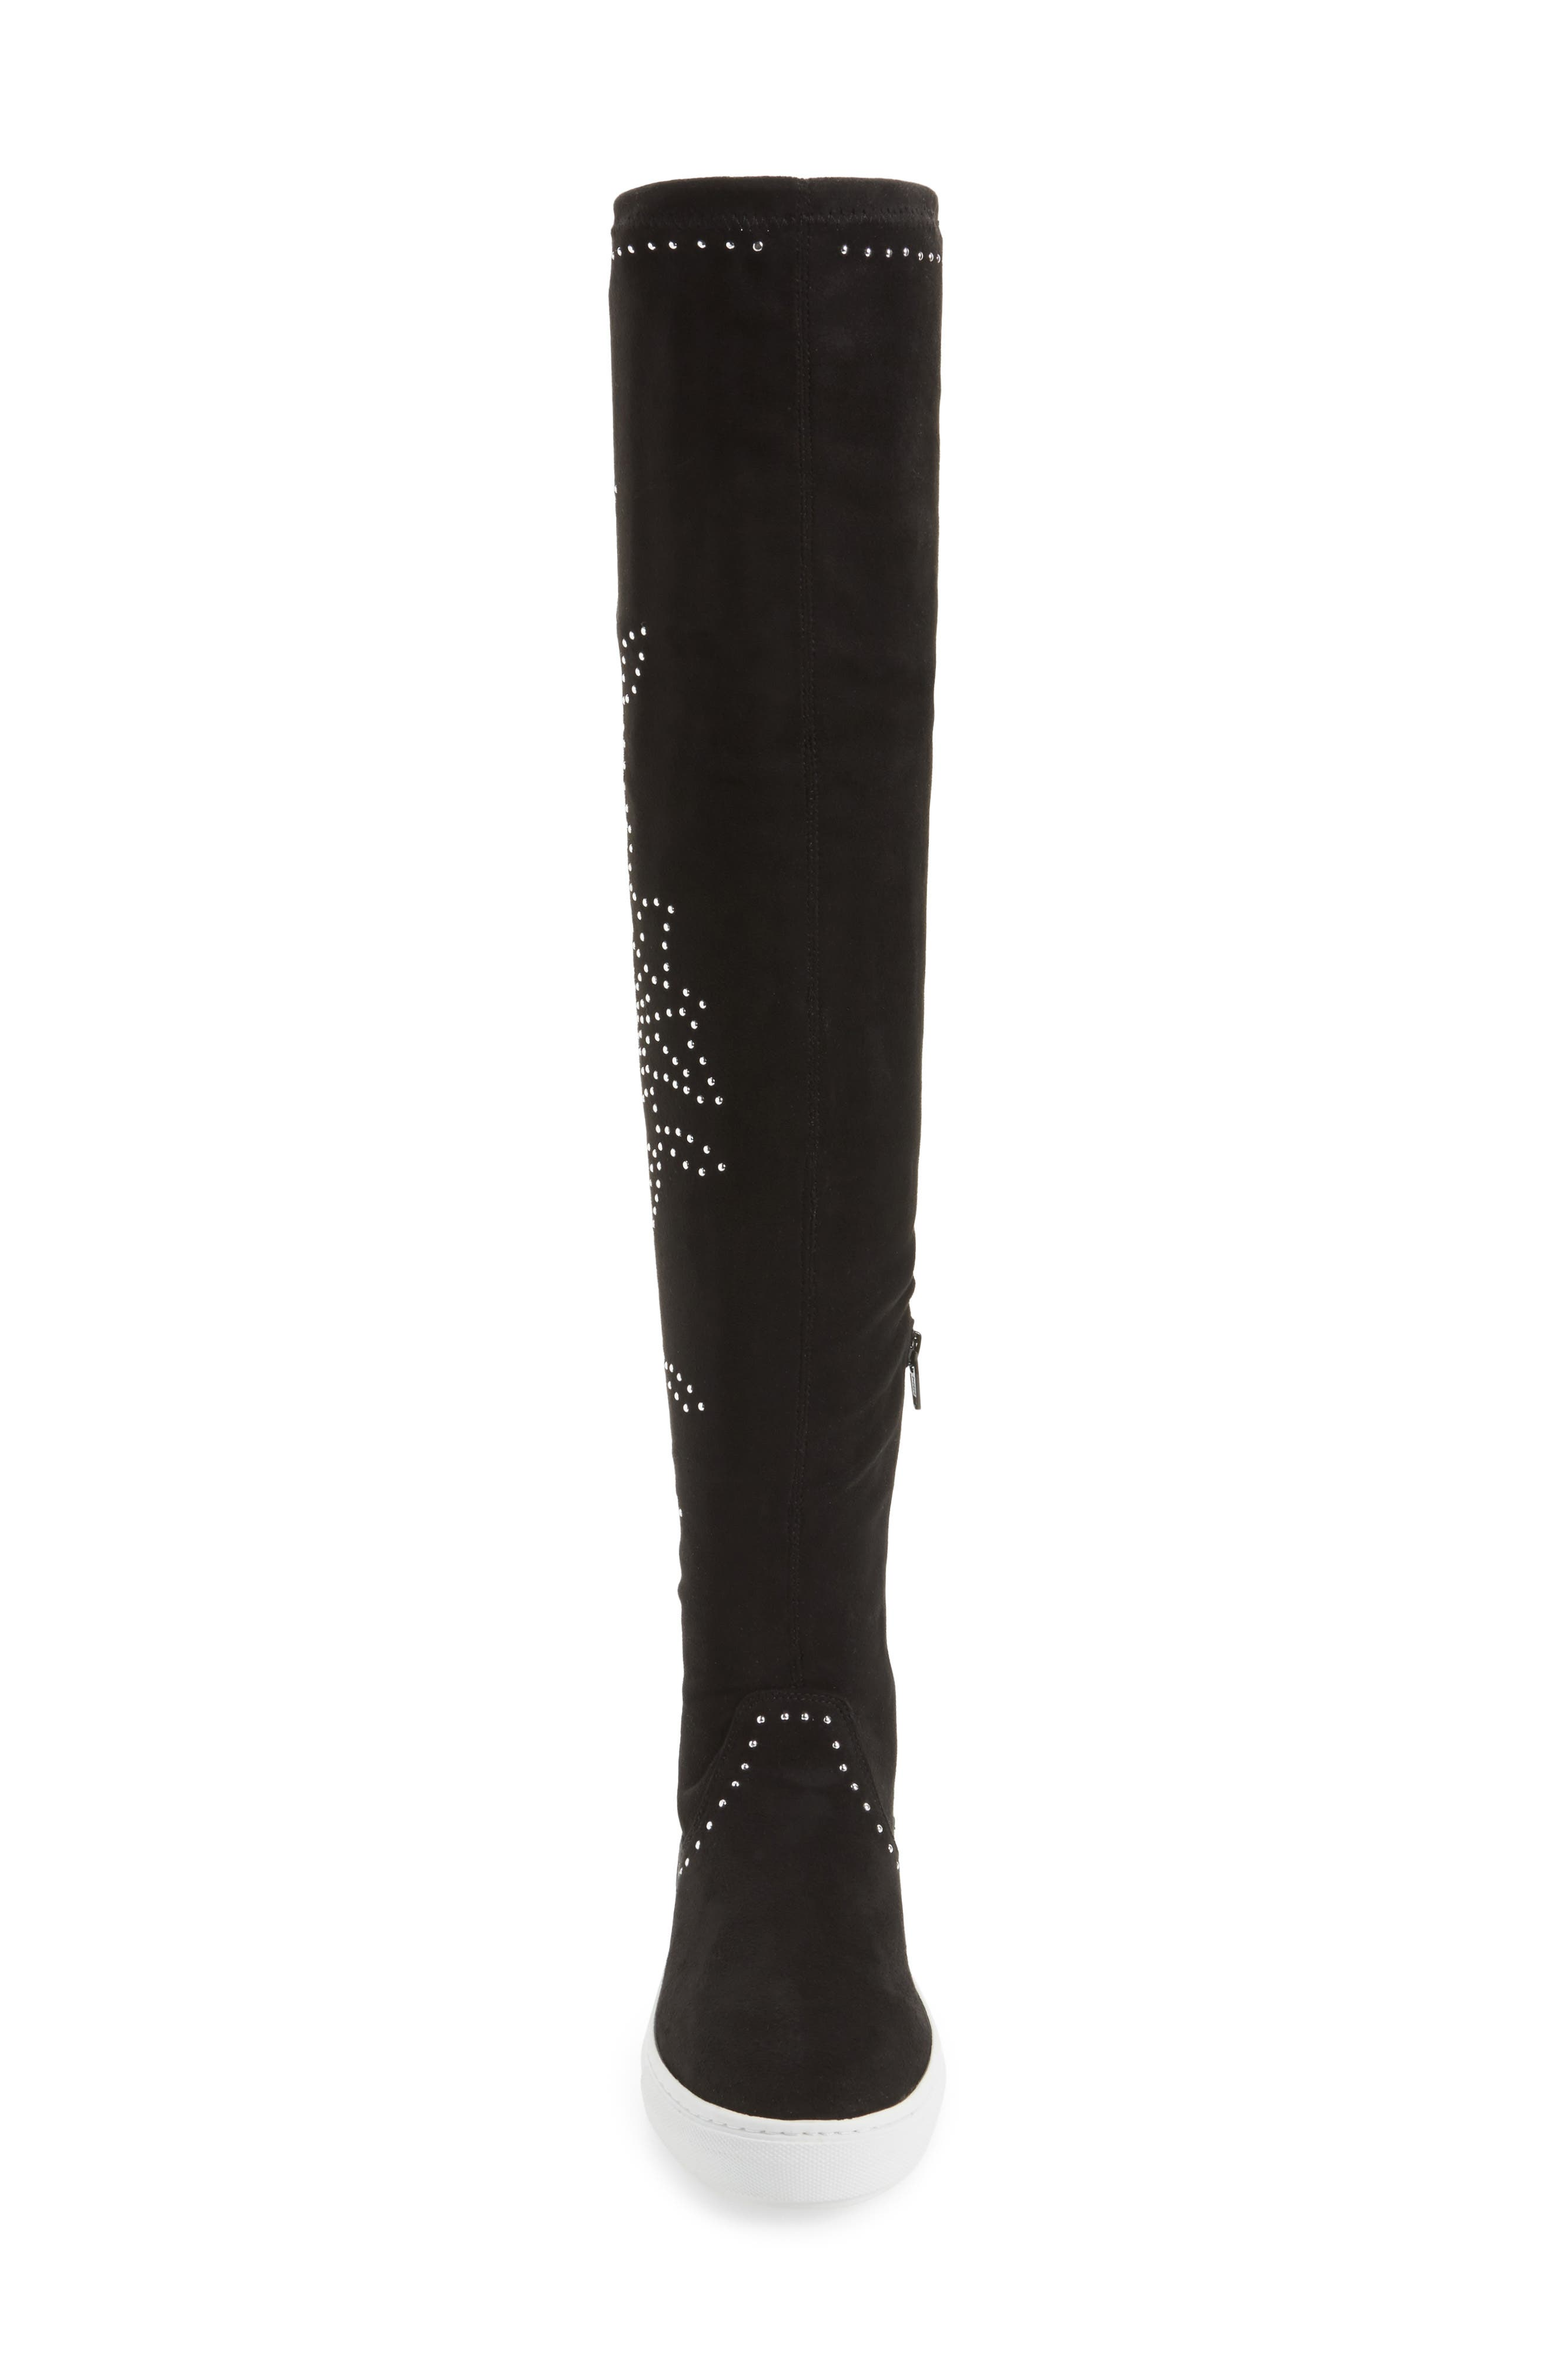 Plentee Over the Knee Boot,                             Alternate thumbnail 4, color,                             001